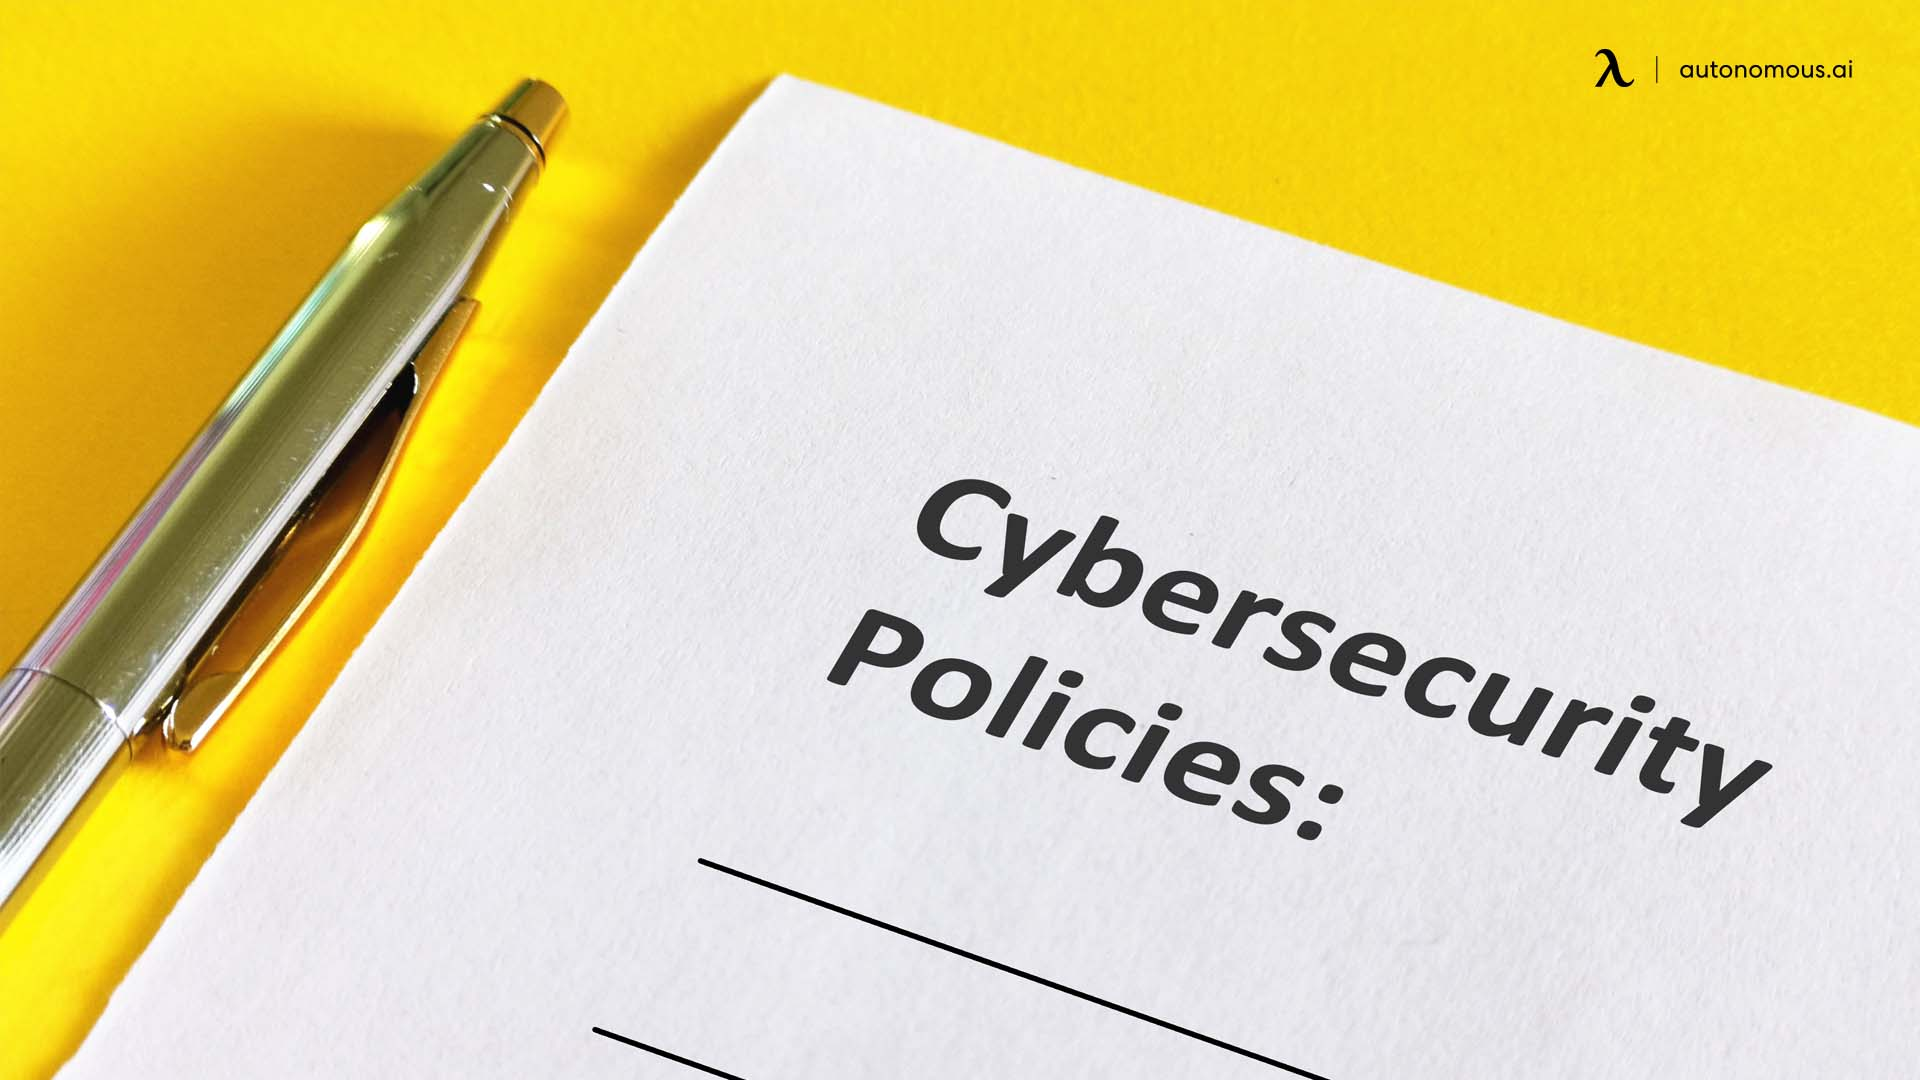 What Next? – Optimize Cybersecurity